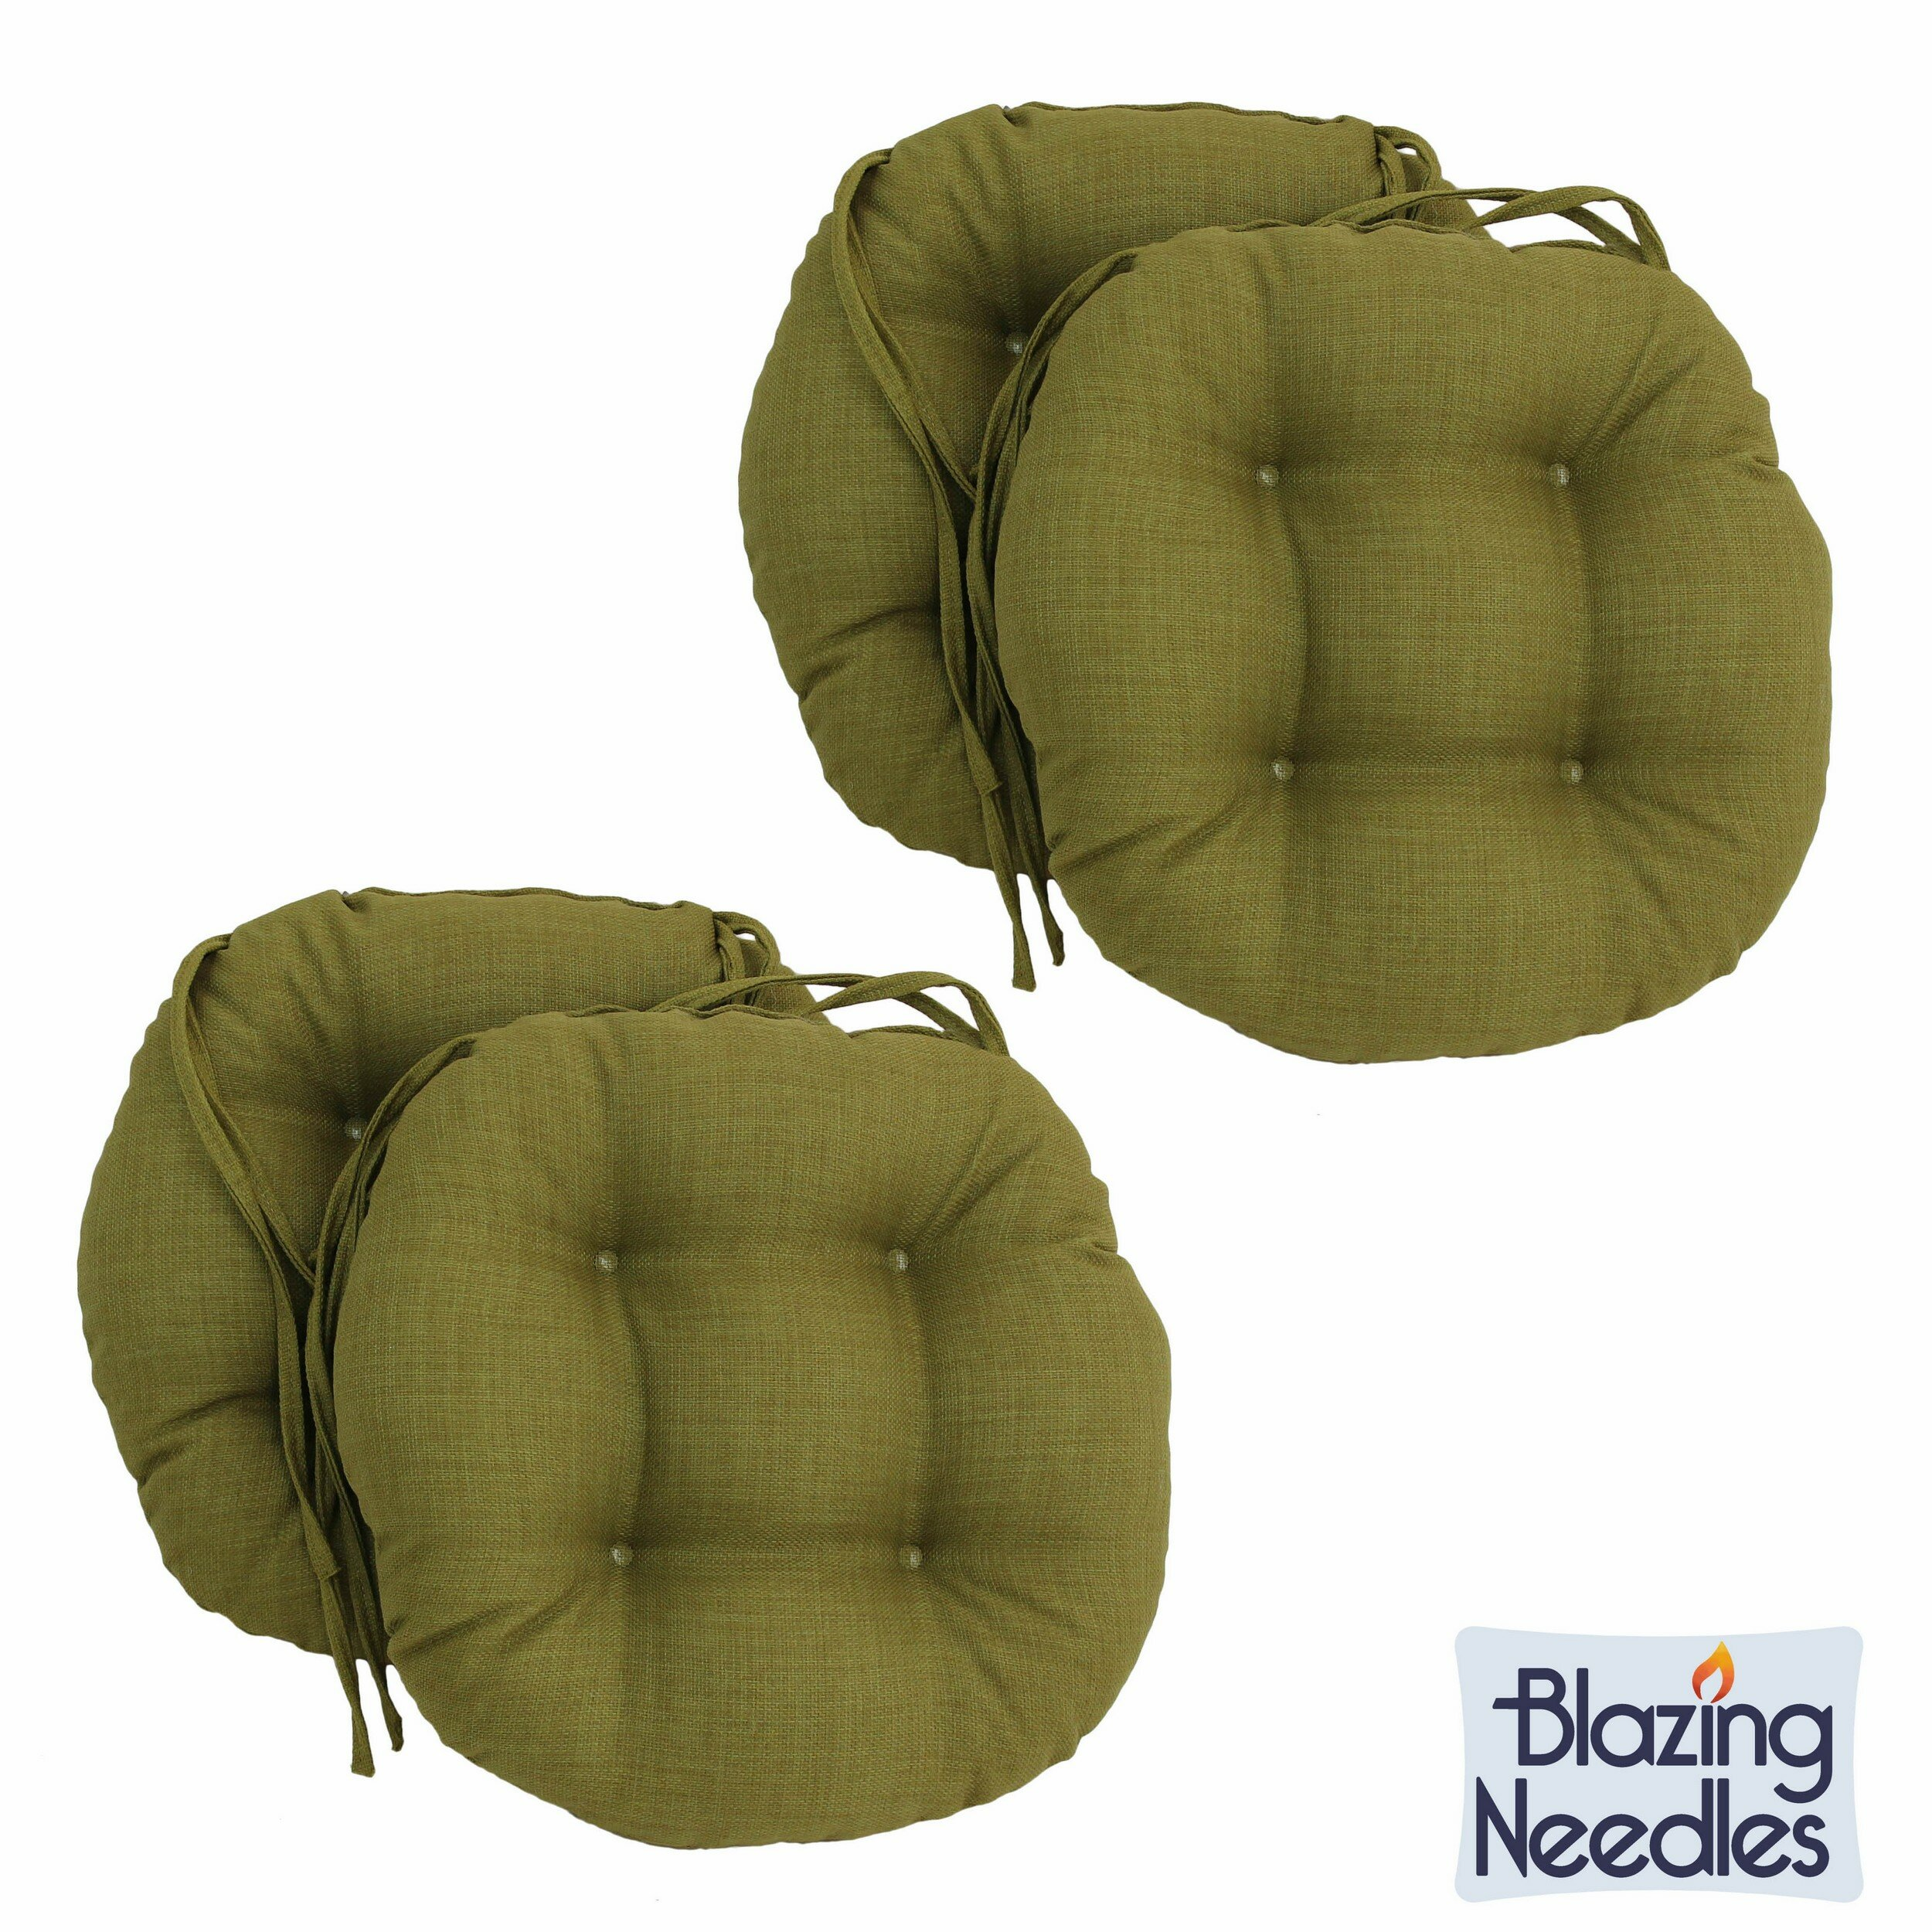 Blazing Needles Blazing Needles 16 Inch Round Indoor/Outdoor Chair Cushions  U0026 Reviews | Wayfair